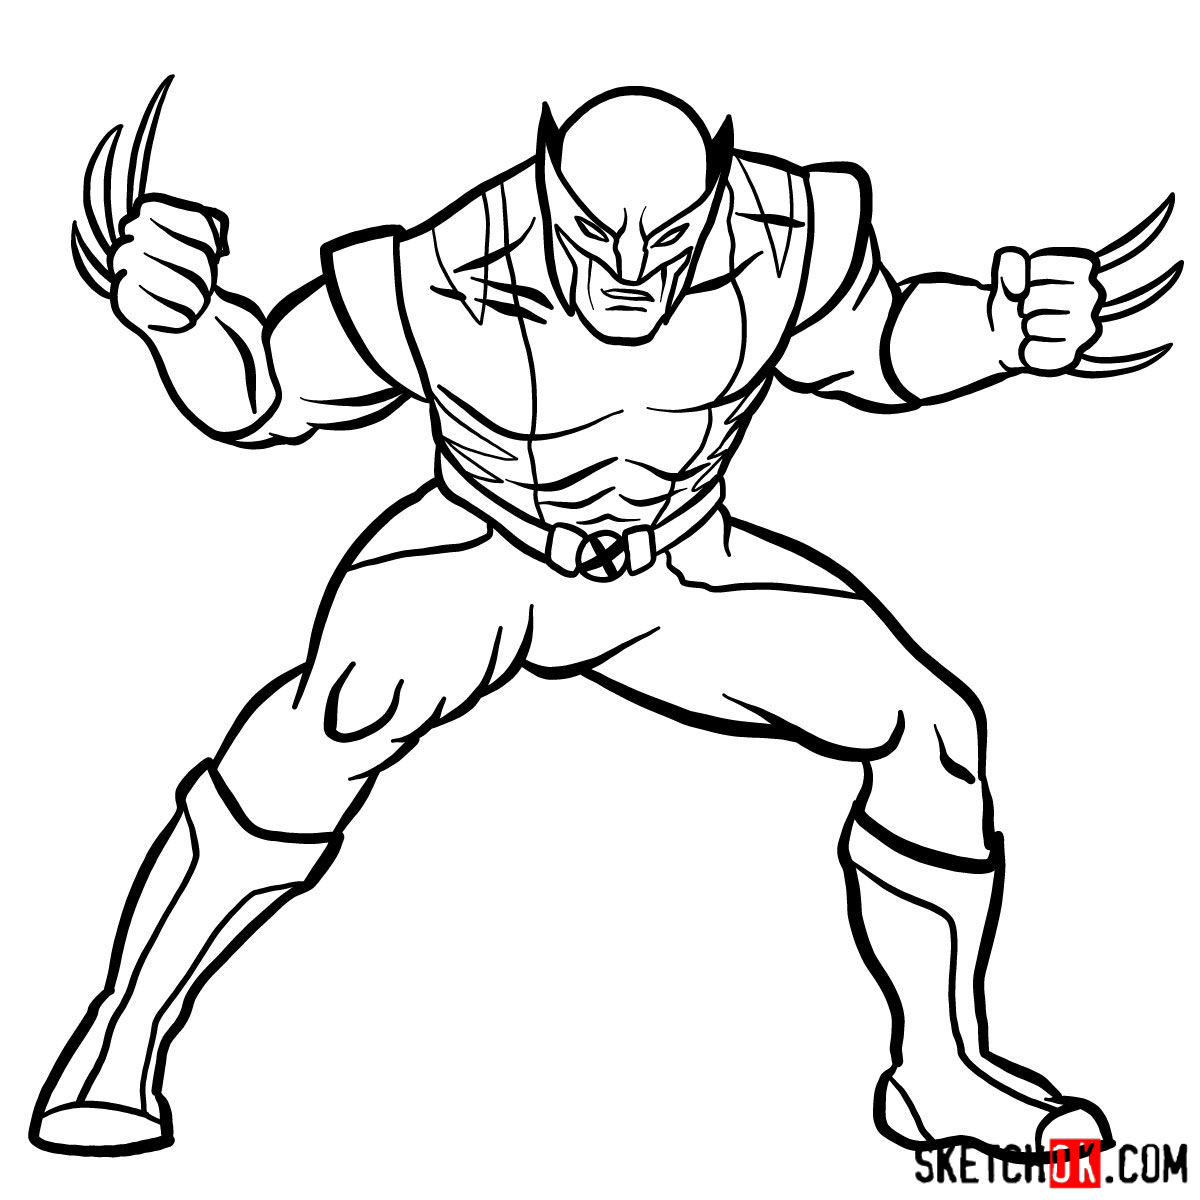 How to draw Wolverine in his superhero suit - step 12